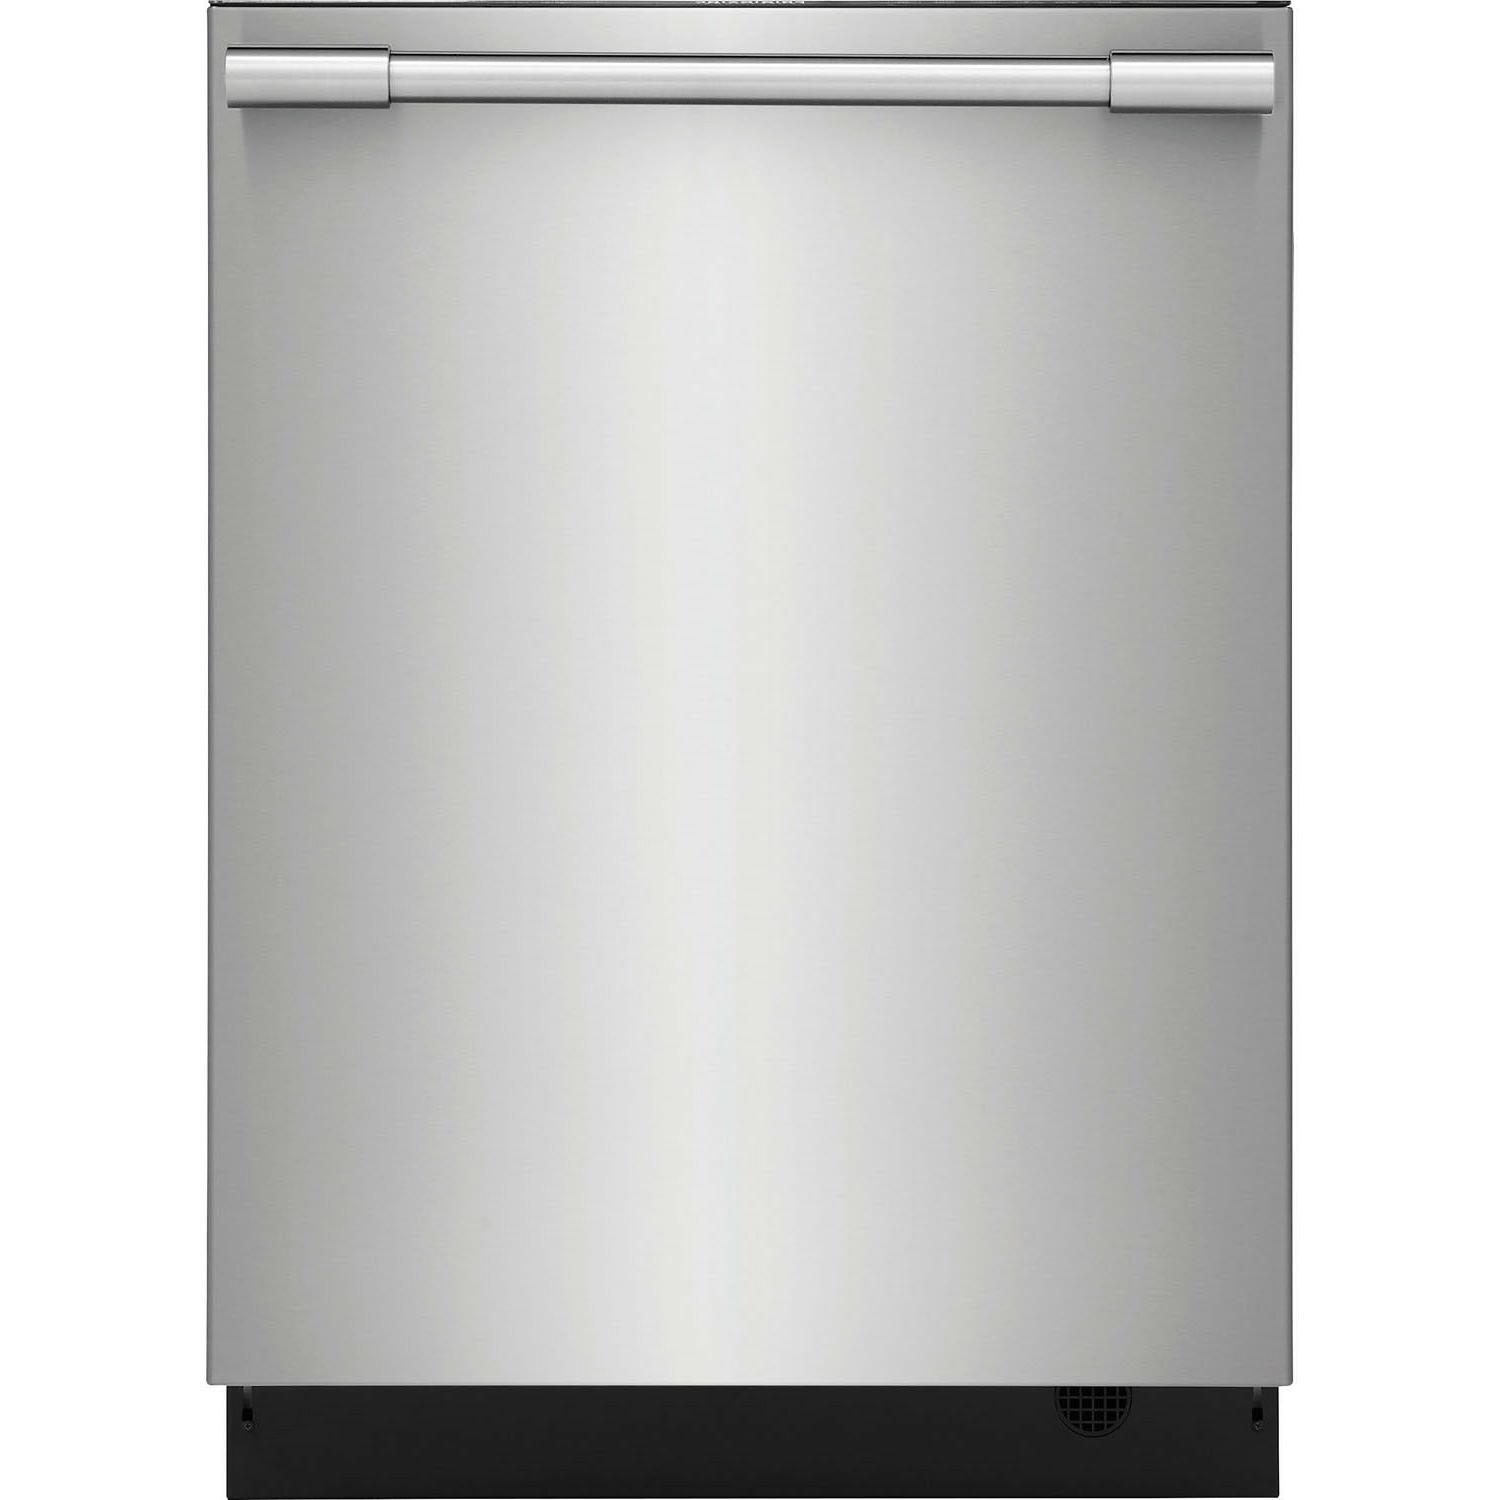 professional stainless 24 built in dishwasher 3rd